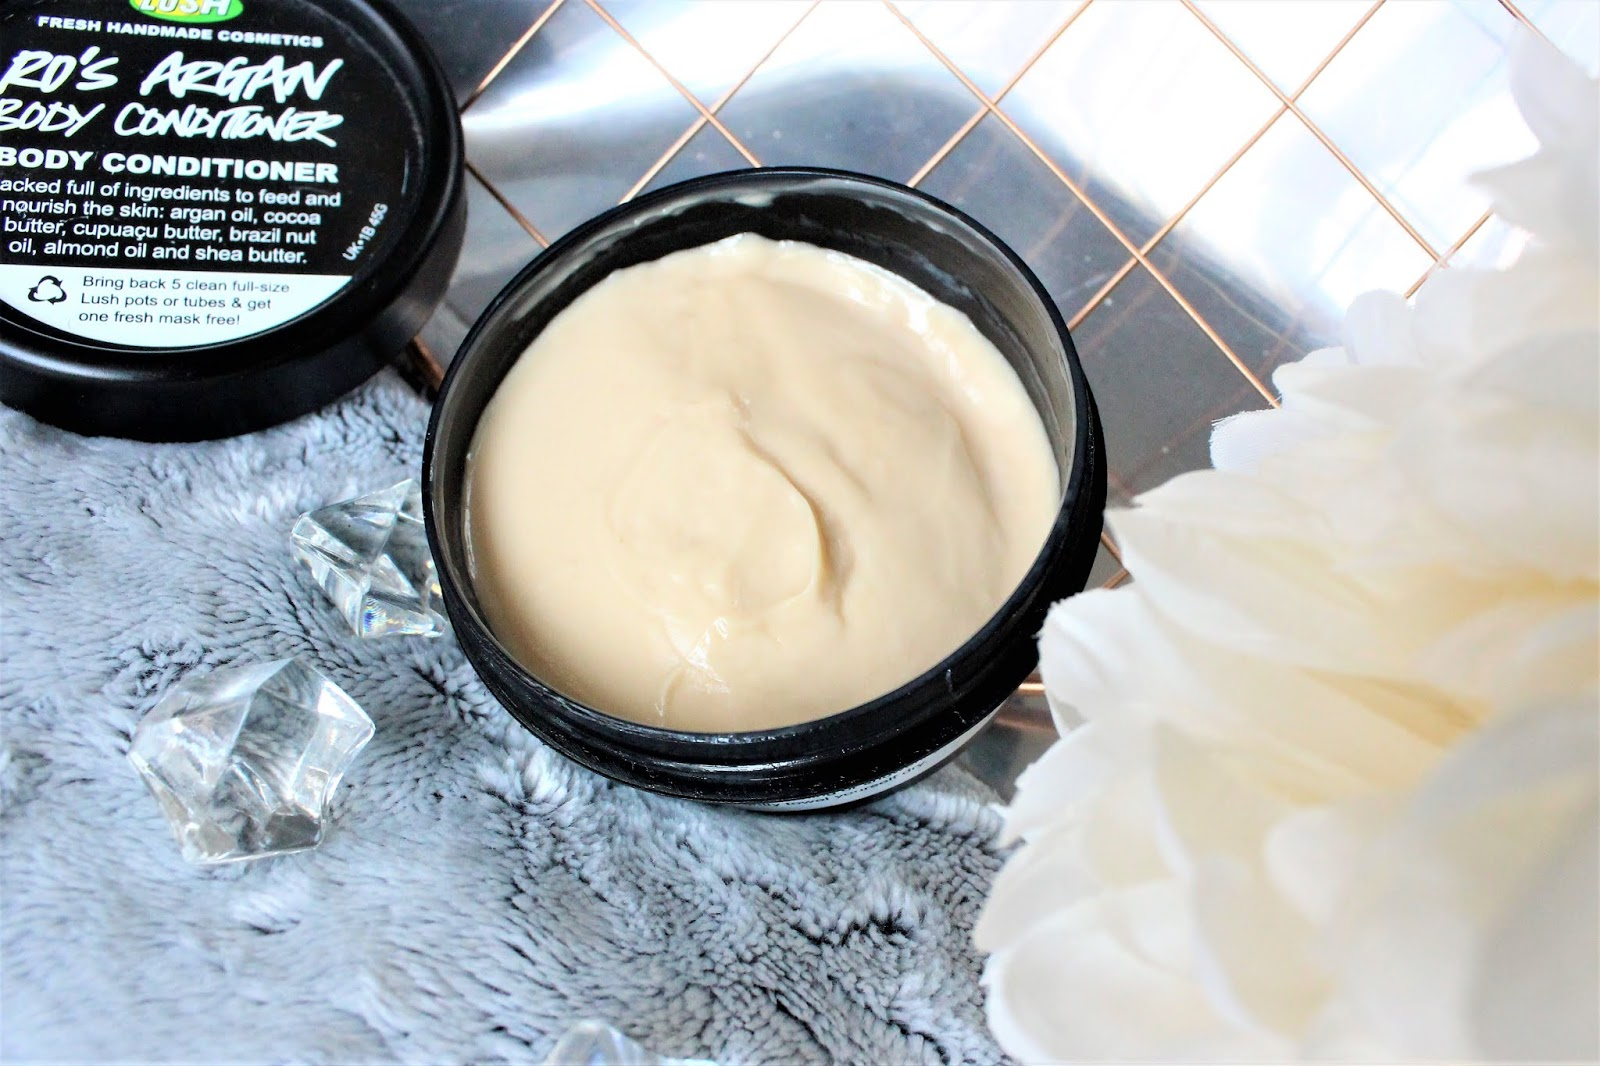 lush argan body conditioner review